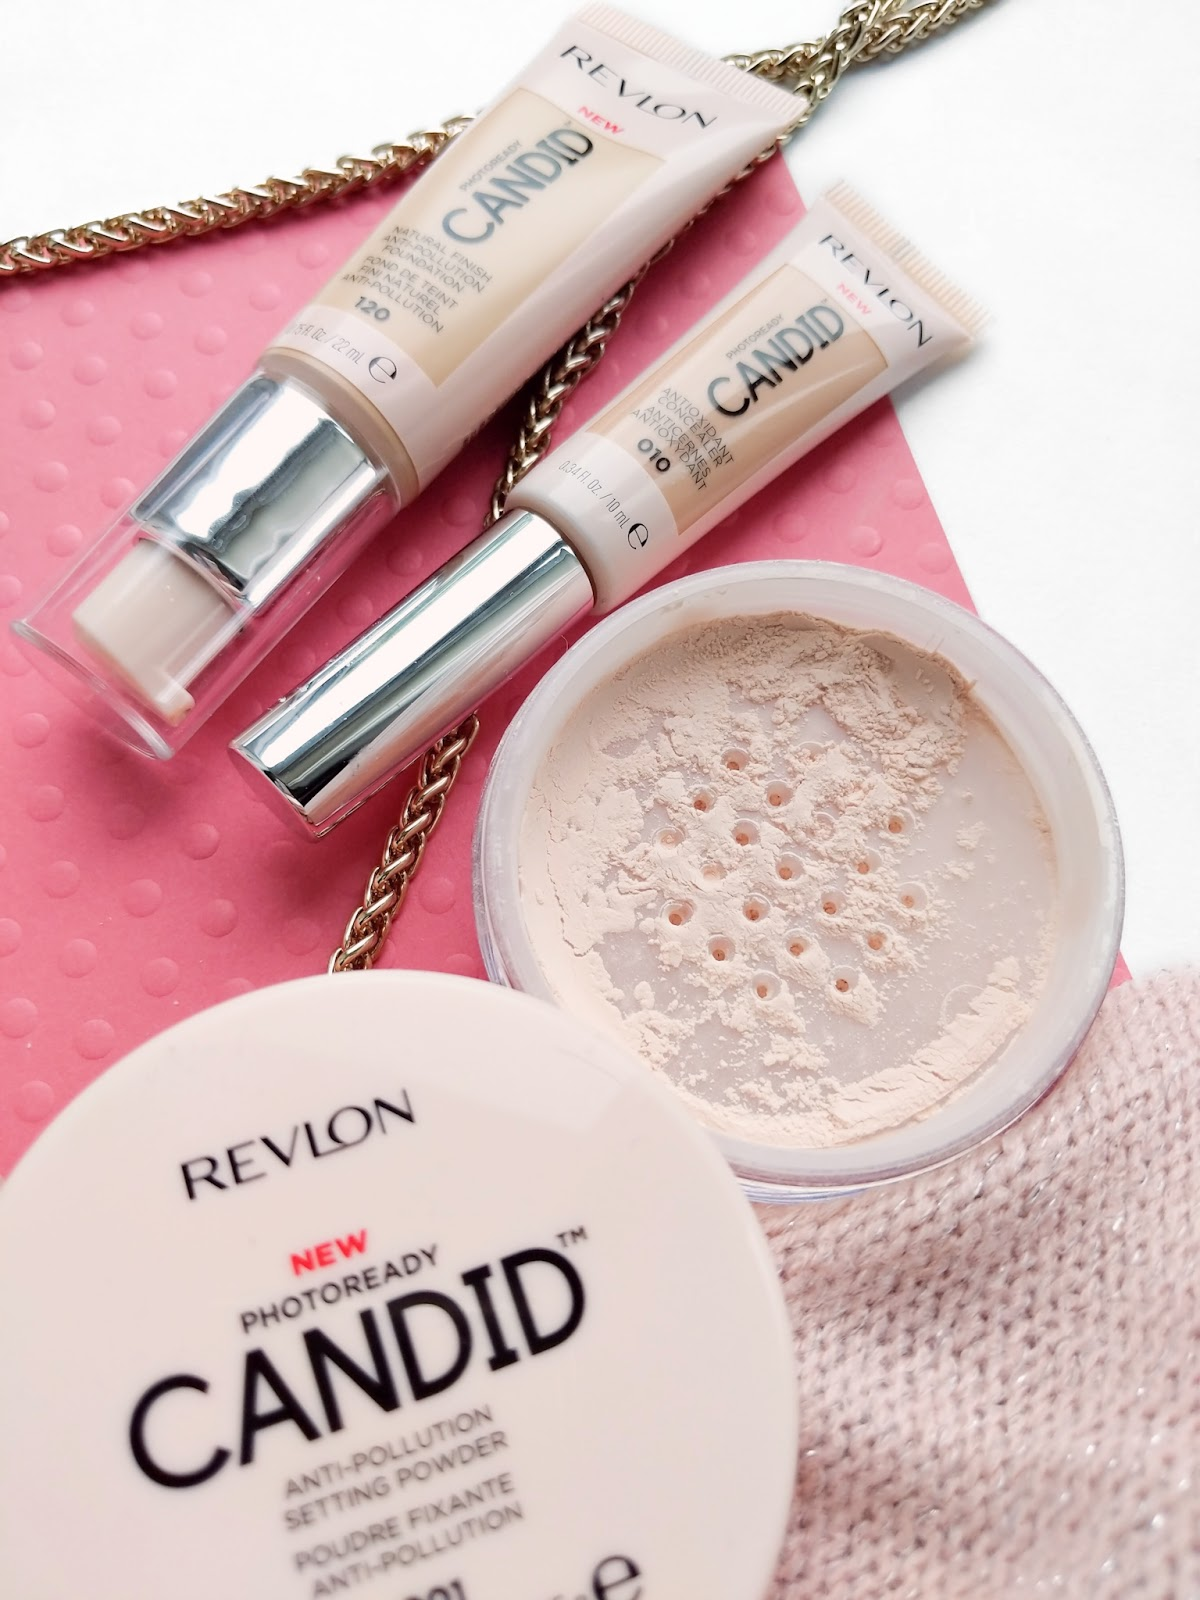 Revlon-Candid-Photoready-Anti-pollution-Setting-Powder